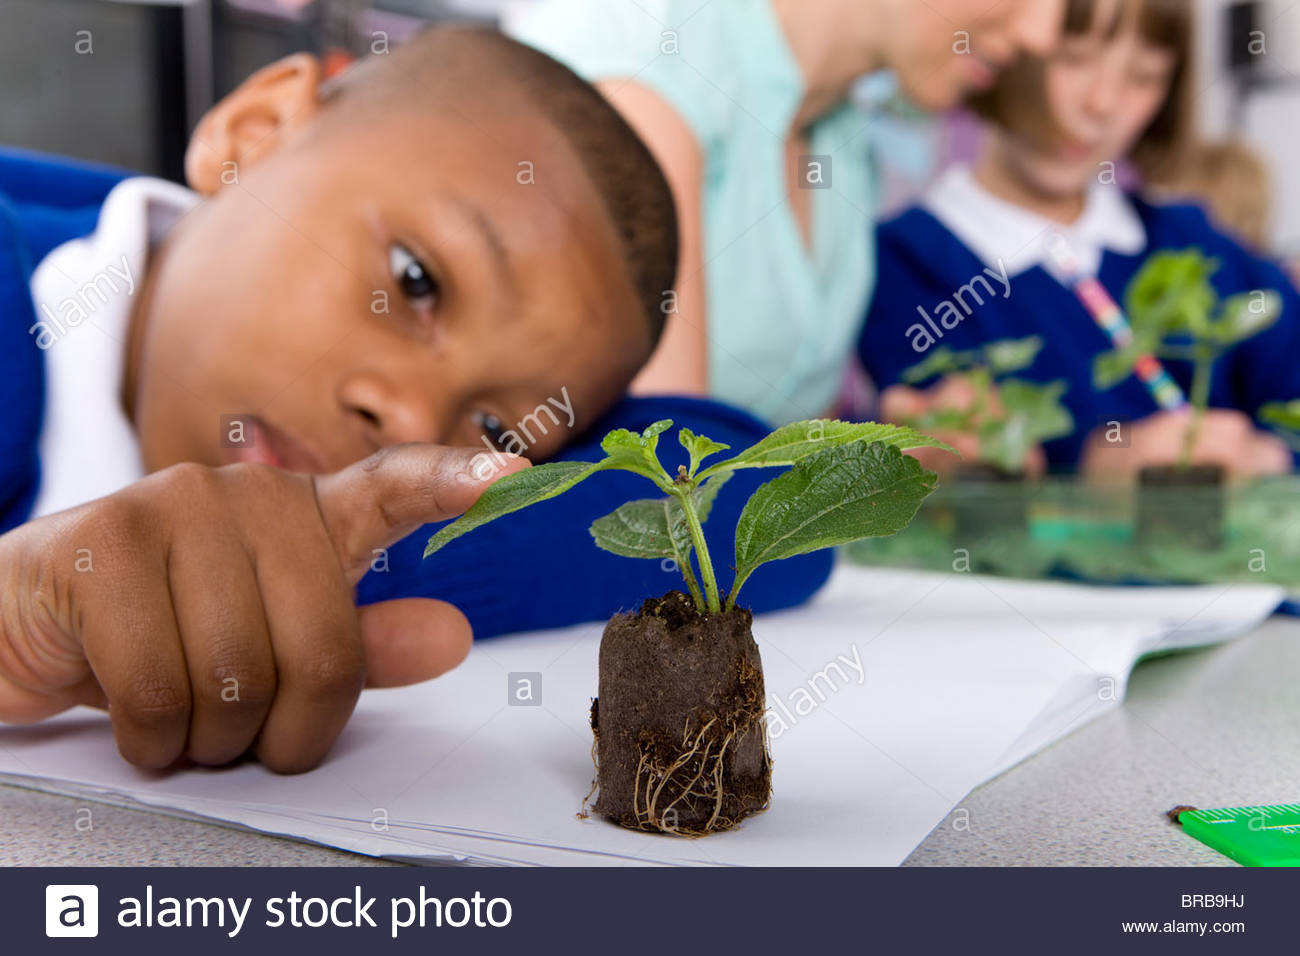 Serious school boy looking at plant seedling in classroom - Stock Image